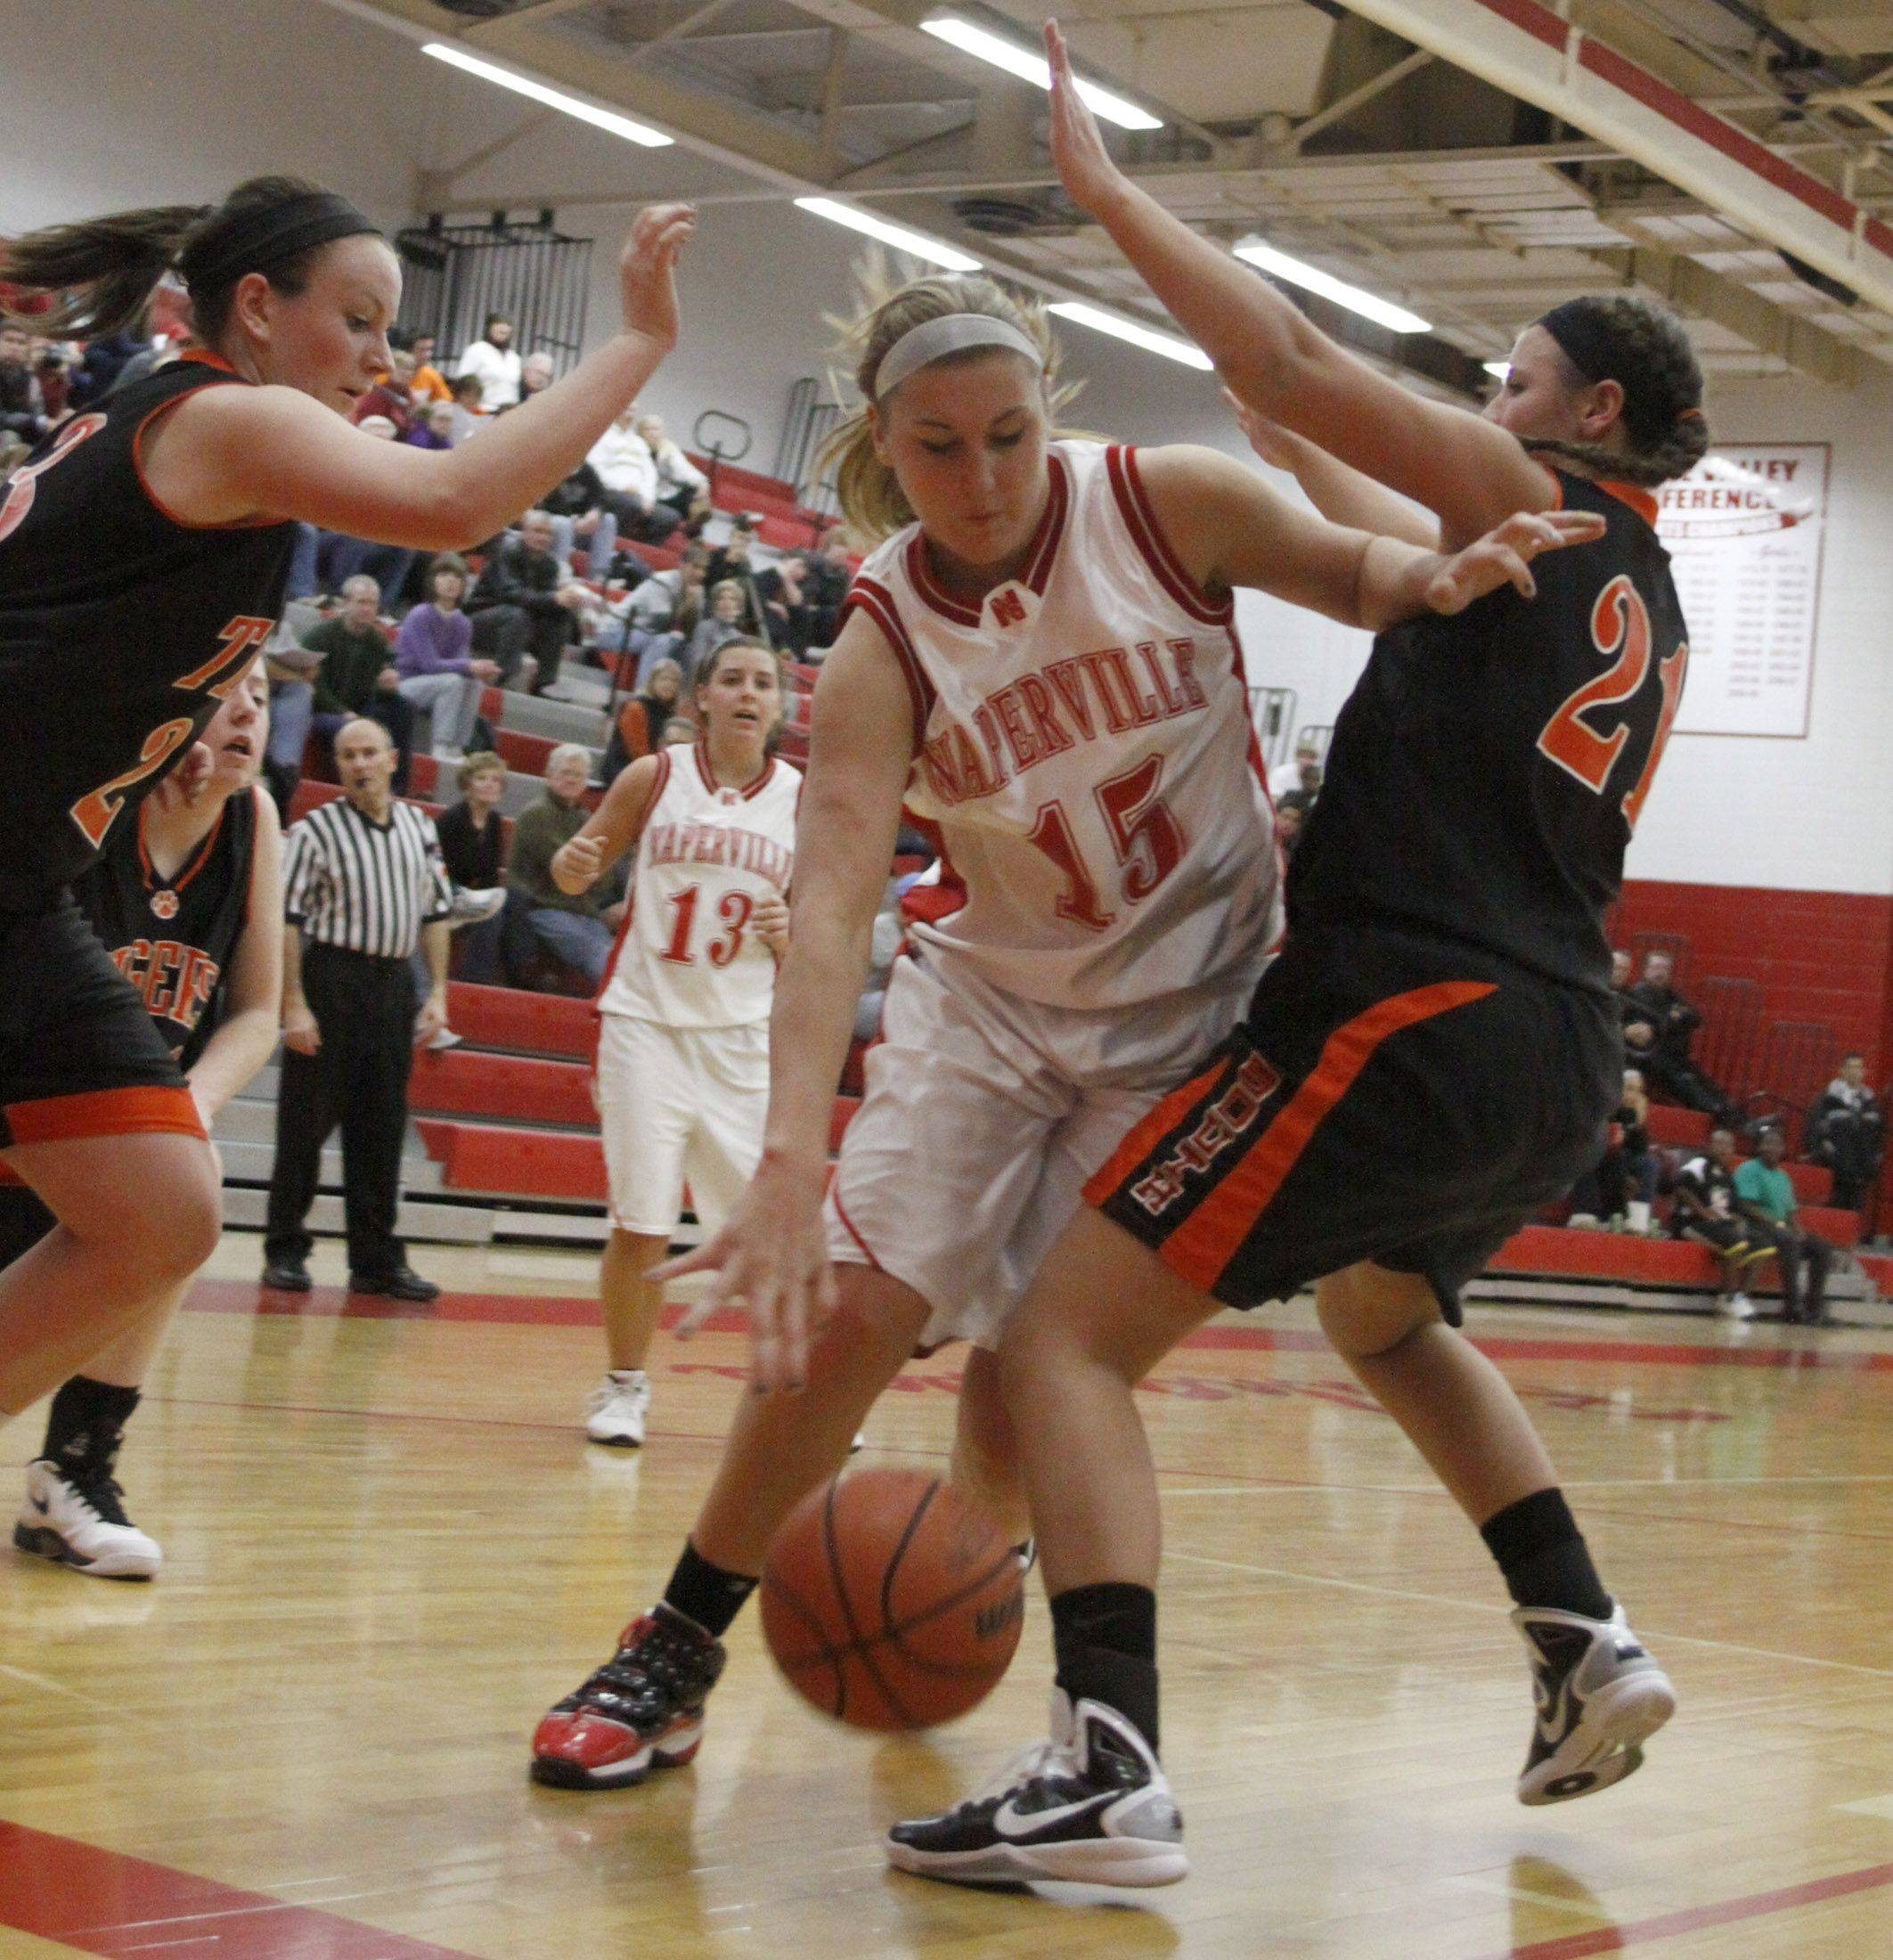 Naperville Central's Victoria Trowbridge tries to get through Wheaton Warrenville South's defens.